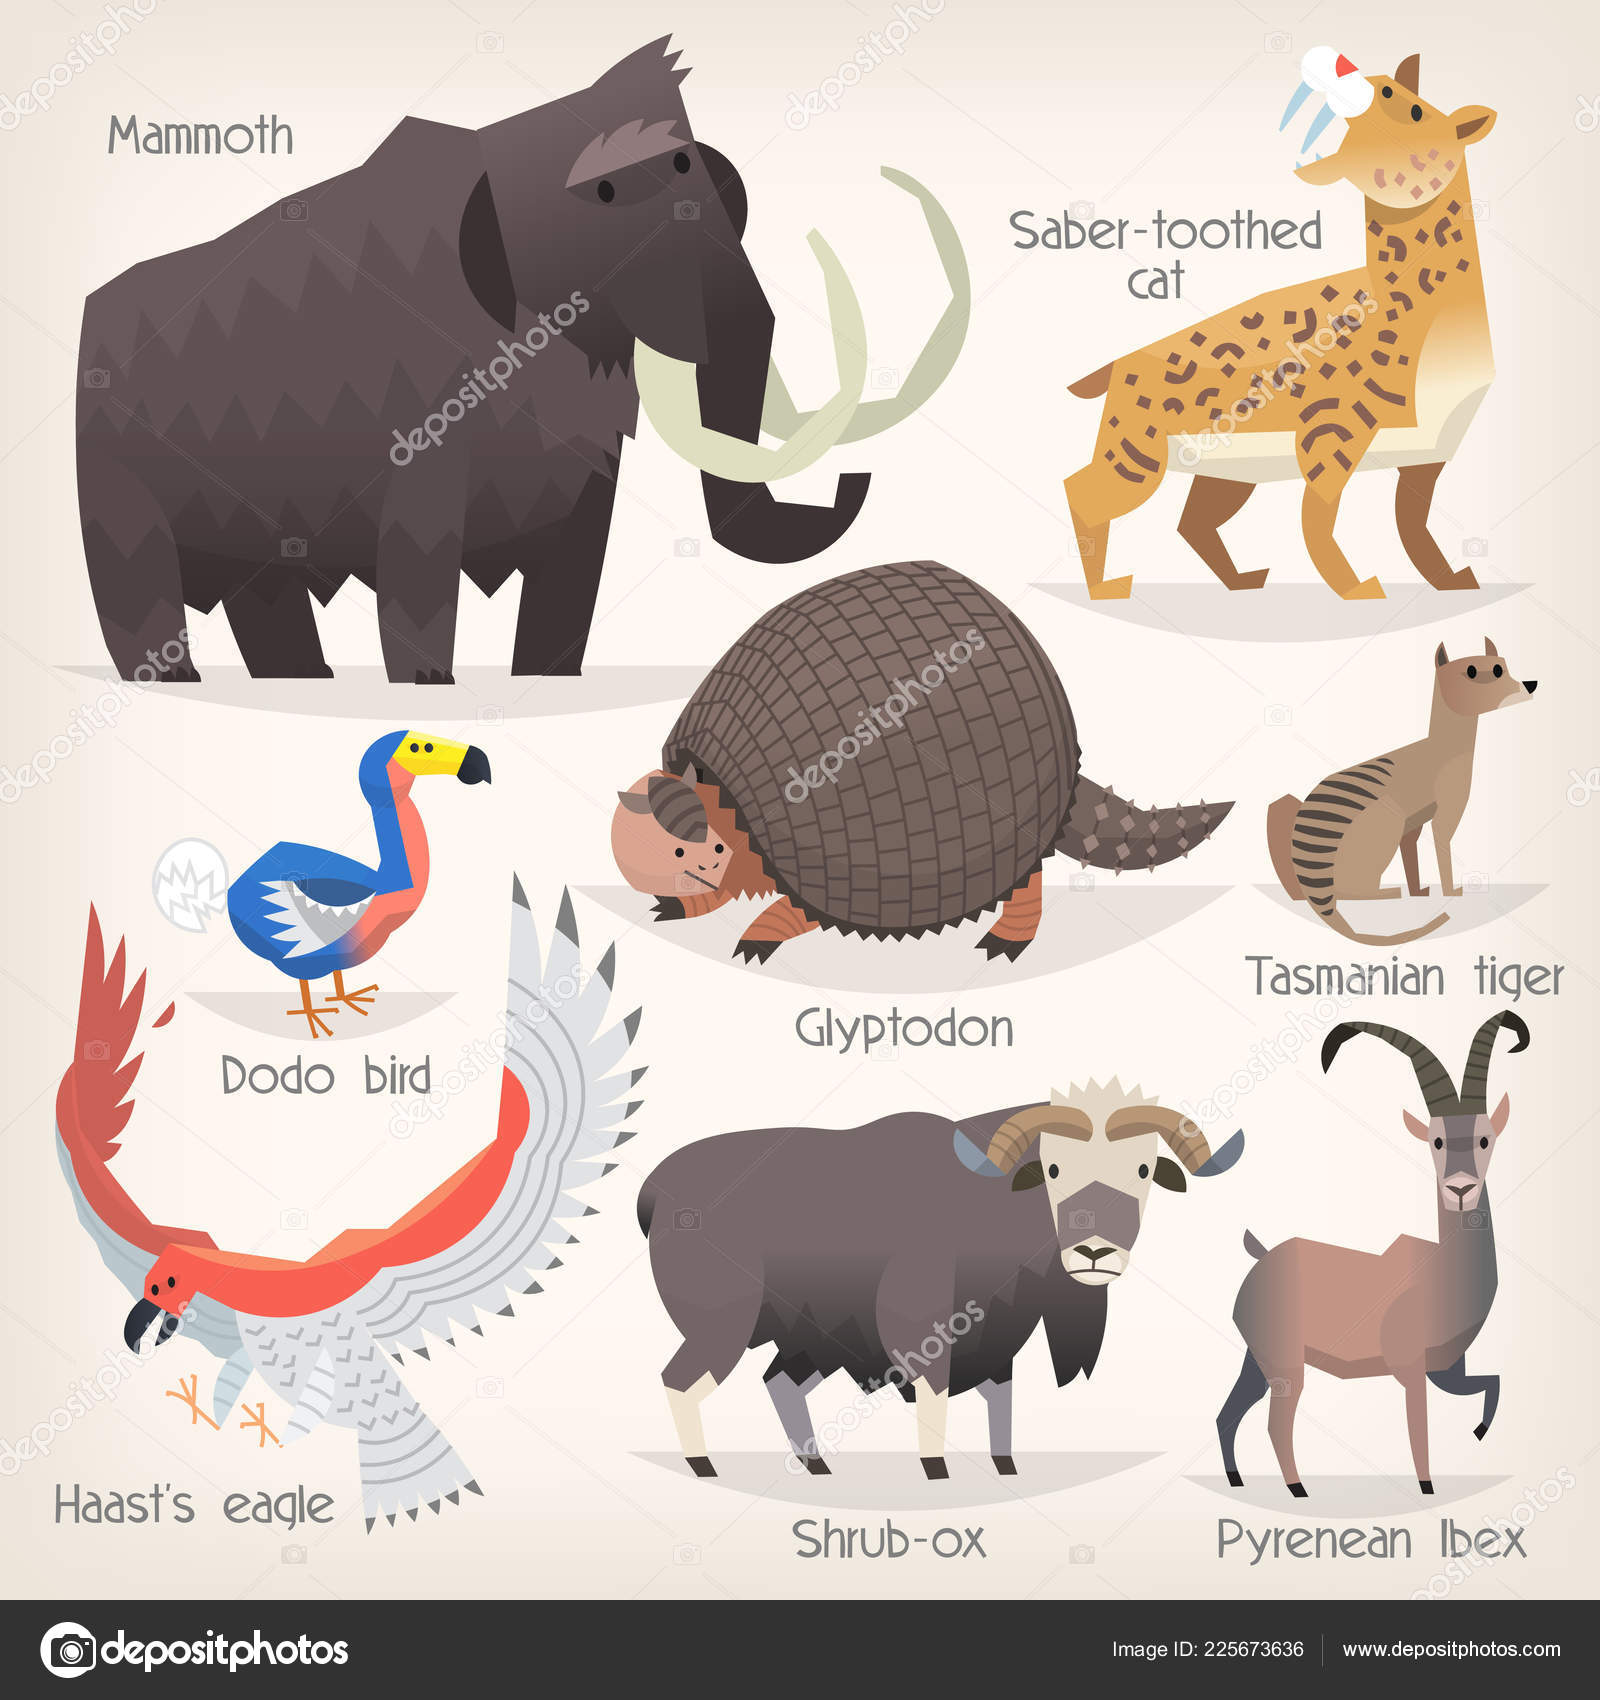 Pictures Vertebrates And Their Names